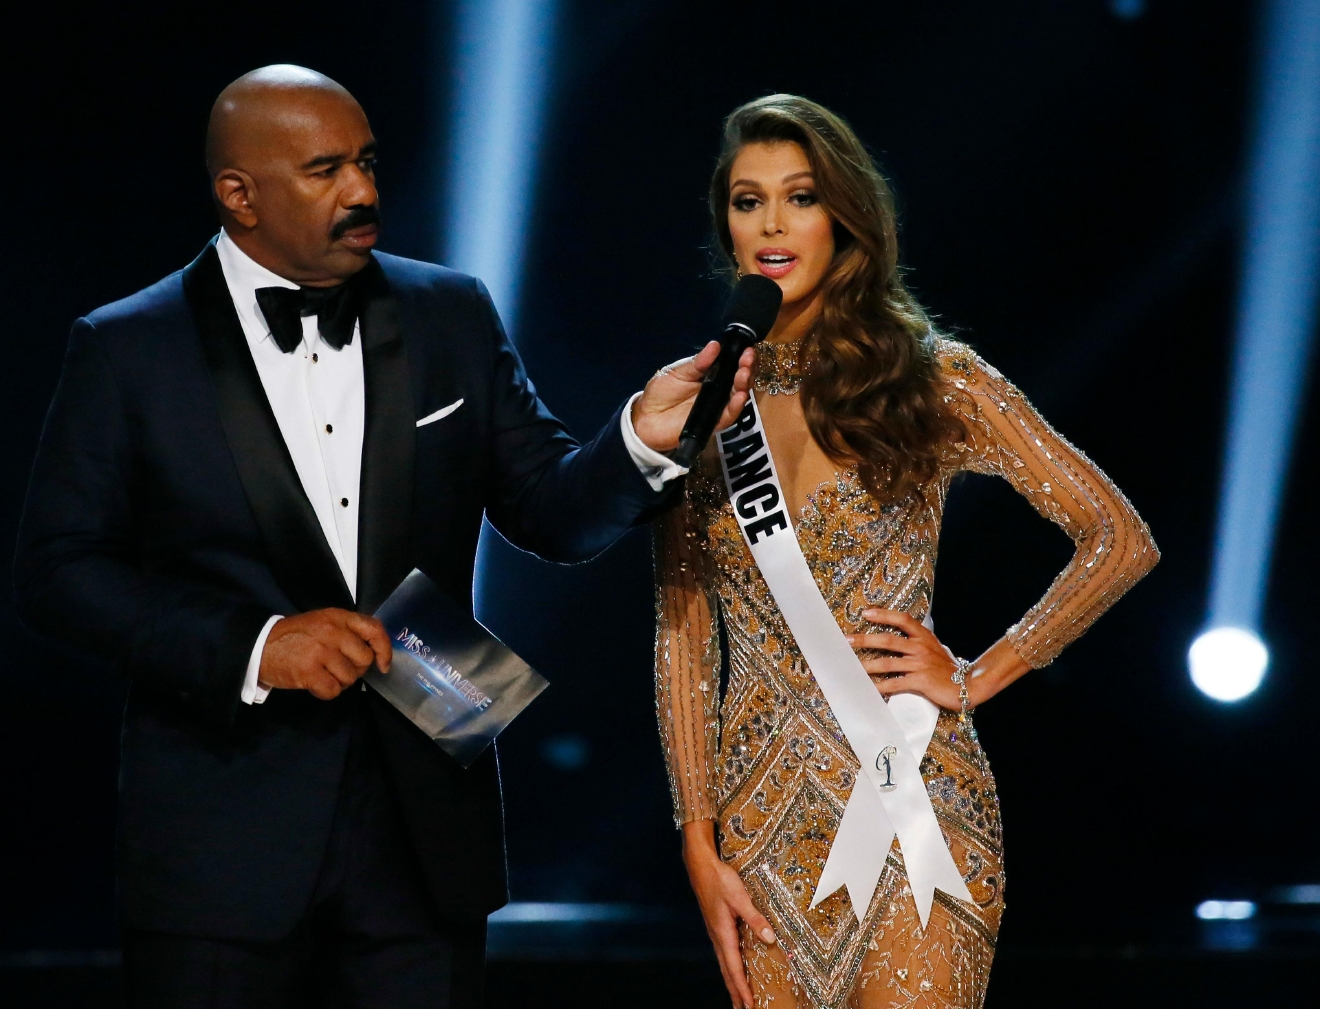 Miss France Iris Mittenaere expounds on her answer during the question-and-answer portion of the Miss Universe 2016 competition Monday, Jan. 30, 2017, at the Mall of Asia in suburban Pasay city, south of Manila, Philippines. Mittenaere won the crown. (AP Photo/Bullit Marquez)